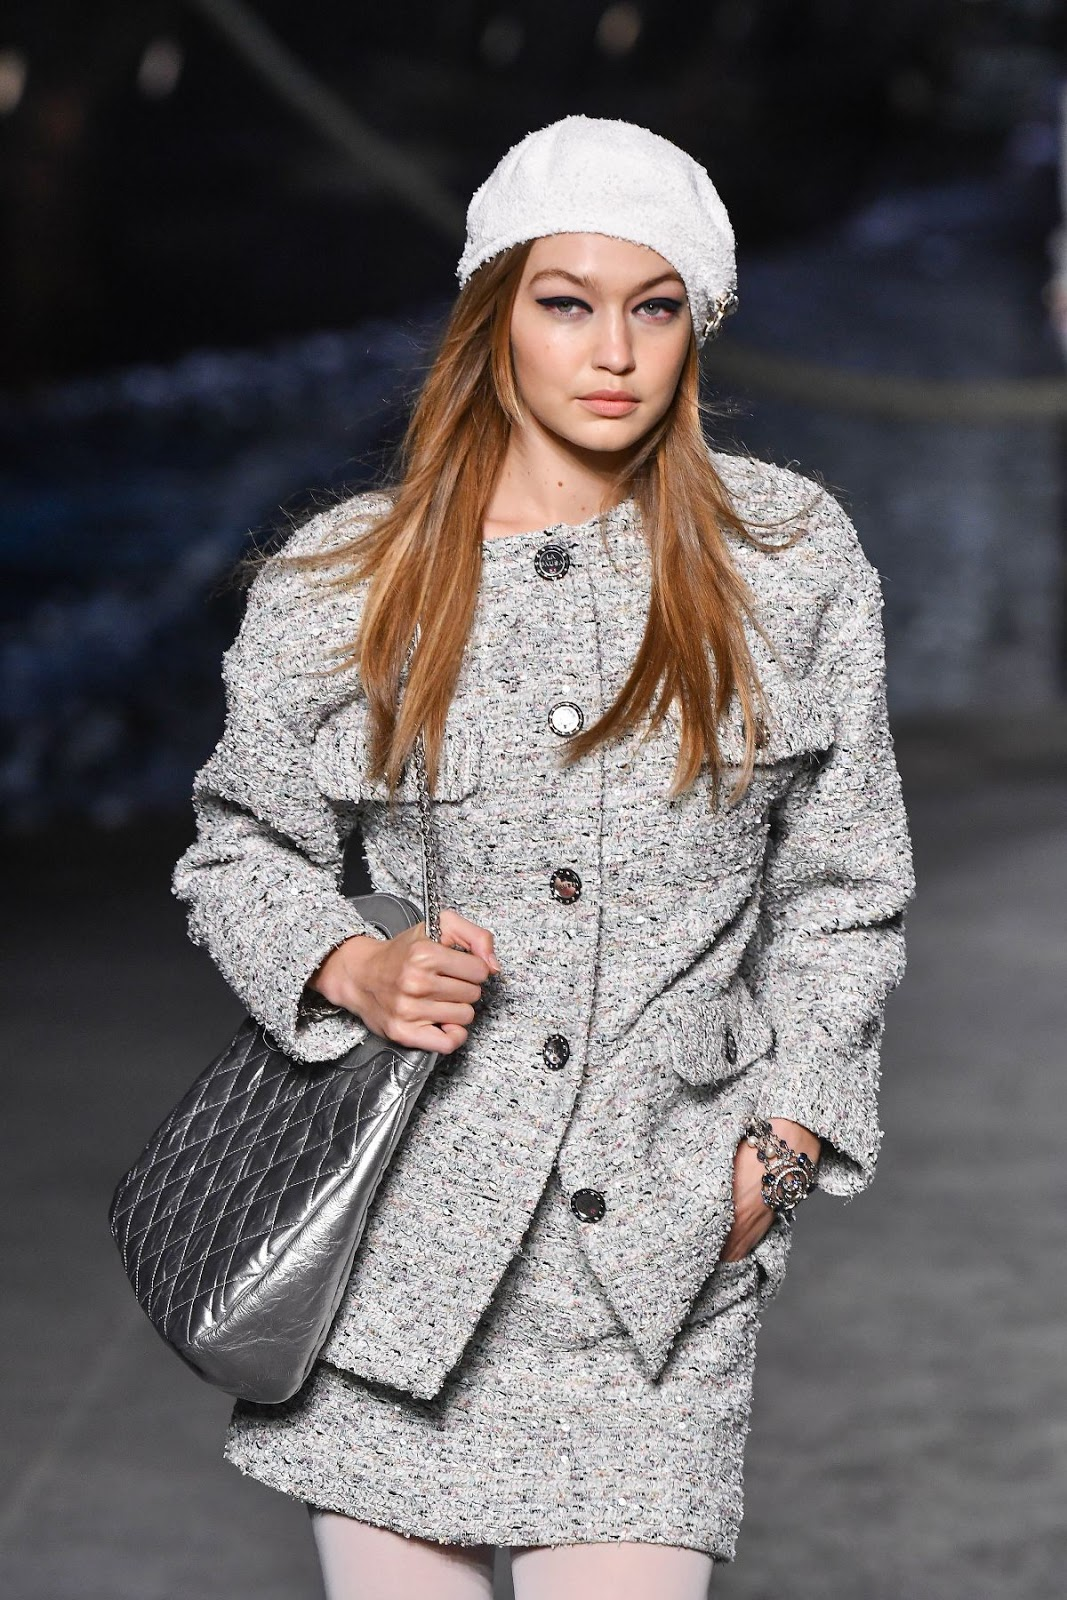 Gigi Hadid at Chanel Cruise 2018-2019 Collection Launch in Paris